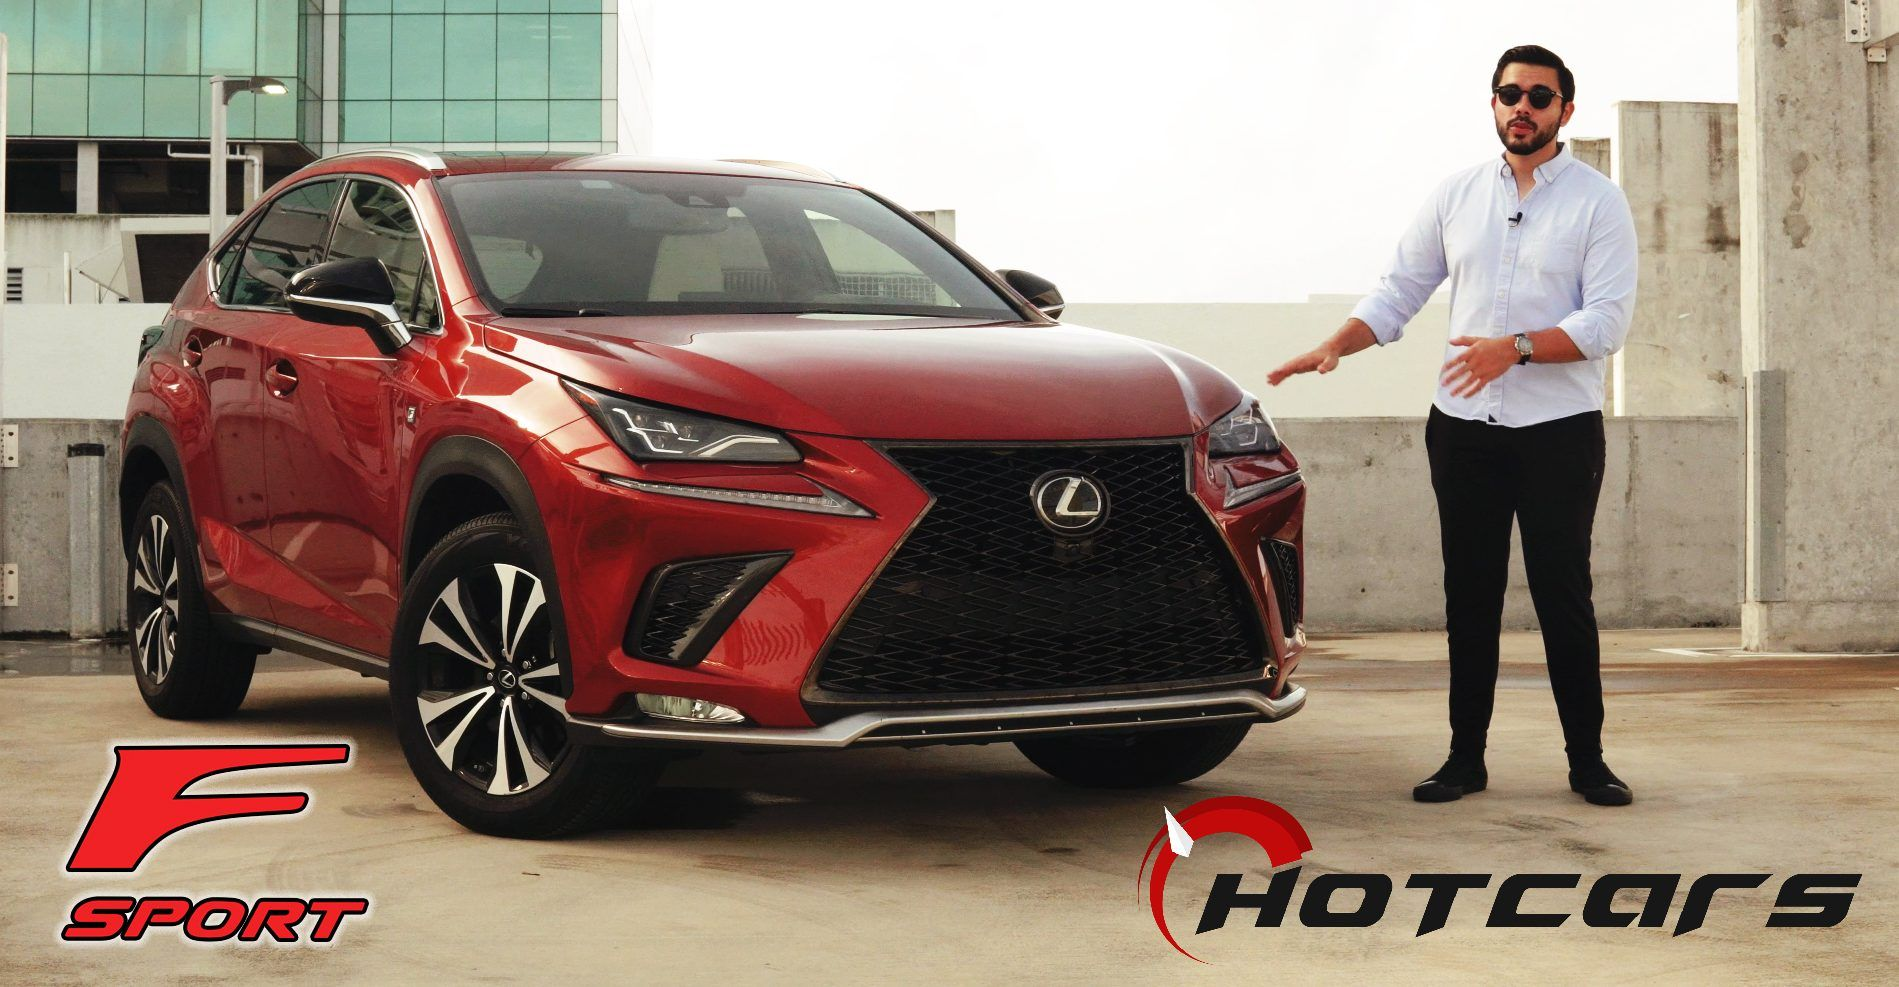 2020 Lexus NX 300 F Sport Review: An Aging But Great Small Luxury SUV